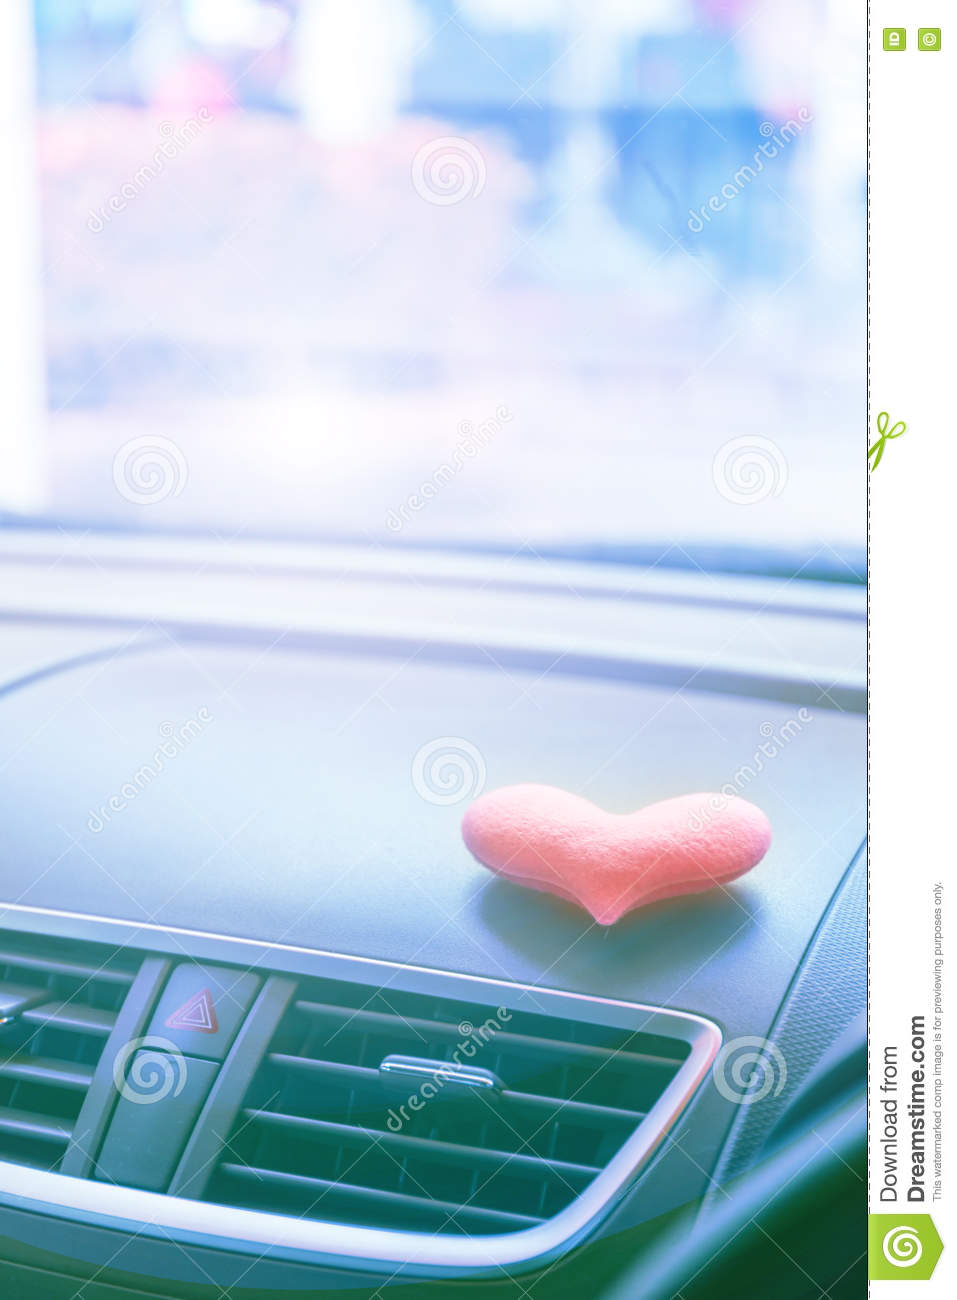 Inside Car With Pink Heart With Blue Light Filter Stock Photo